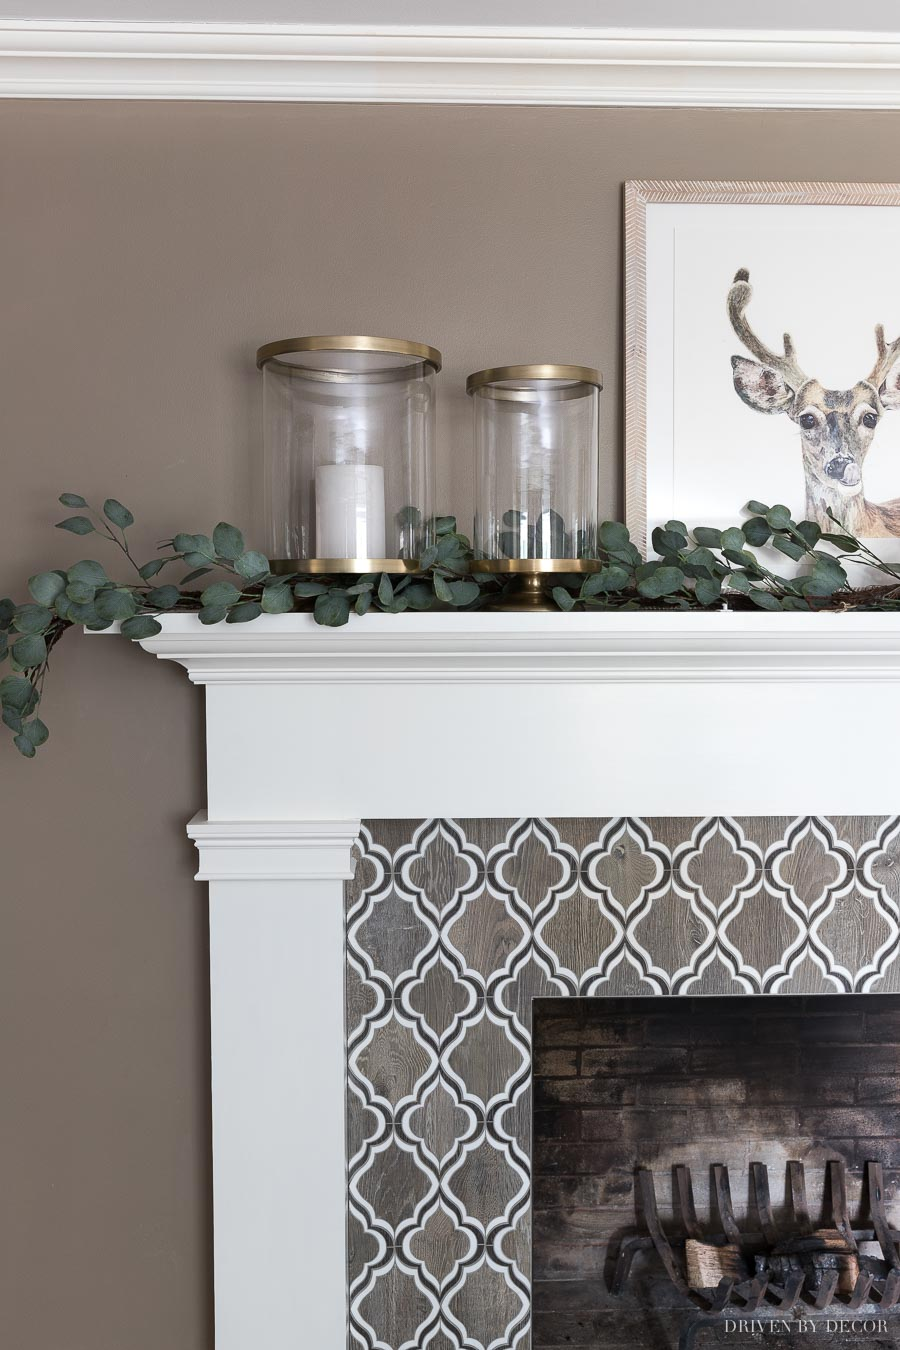 Gorgeous brass hurricanes and eucalyptus garland decorating this fireplace mantel for Christmas!